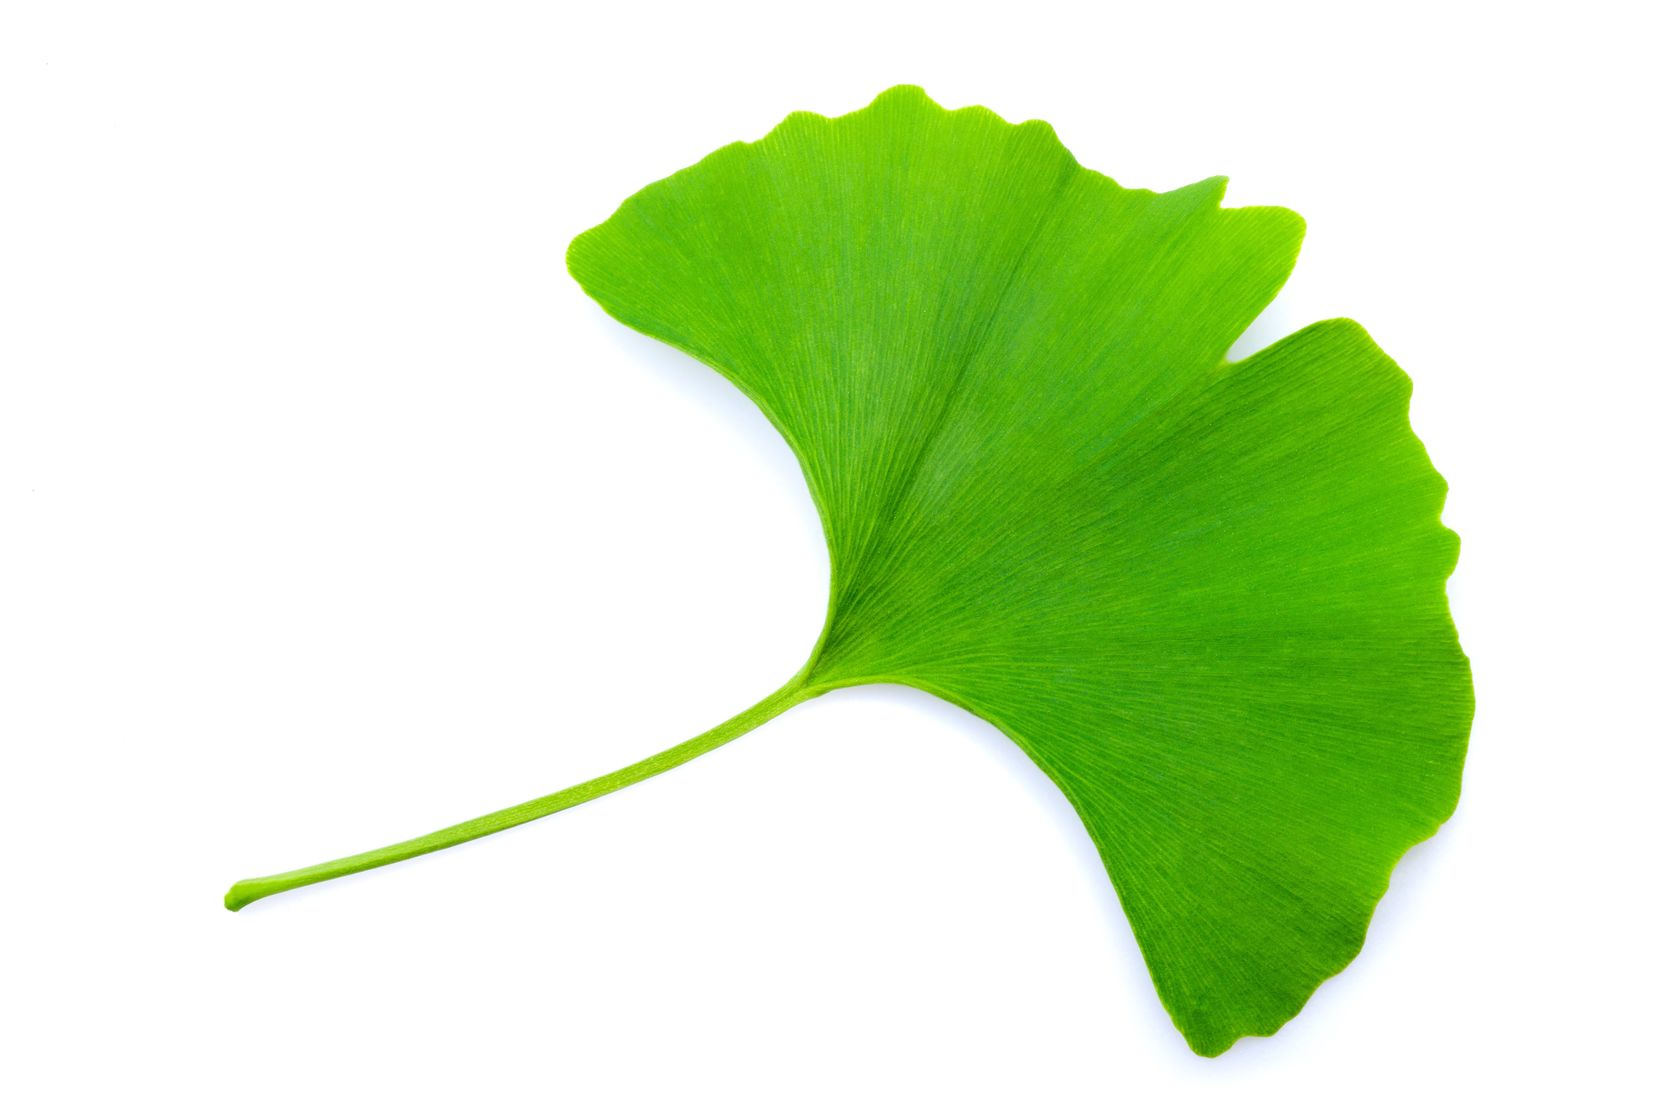 Ginkgo improves stroke recovery